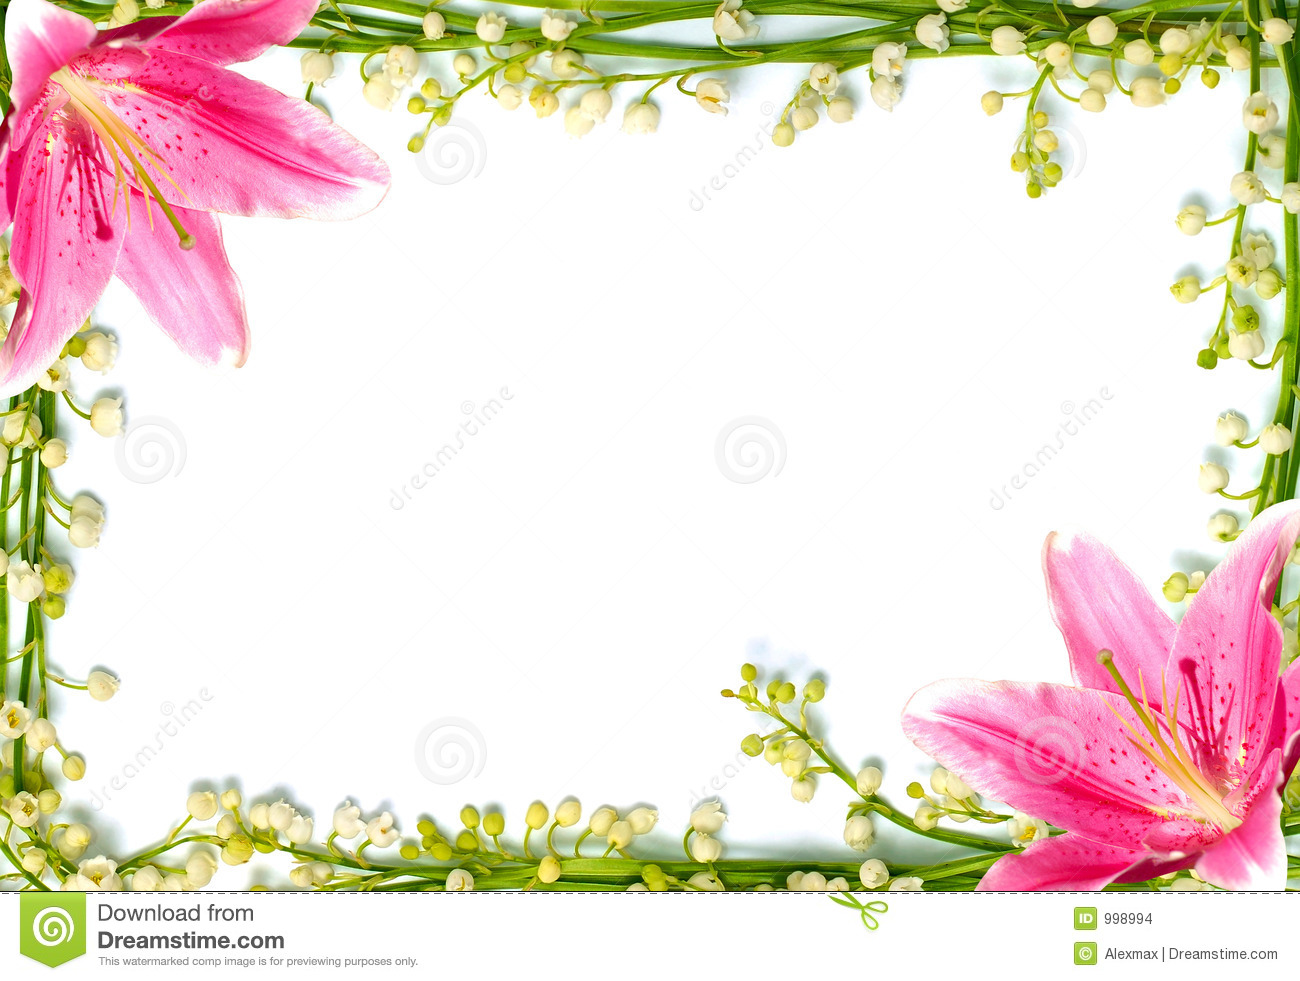 Love Letter Wallpaper Design : Love Letter Background Stock Images - Image: 998994